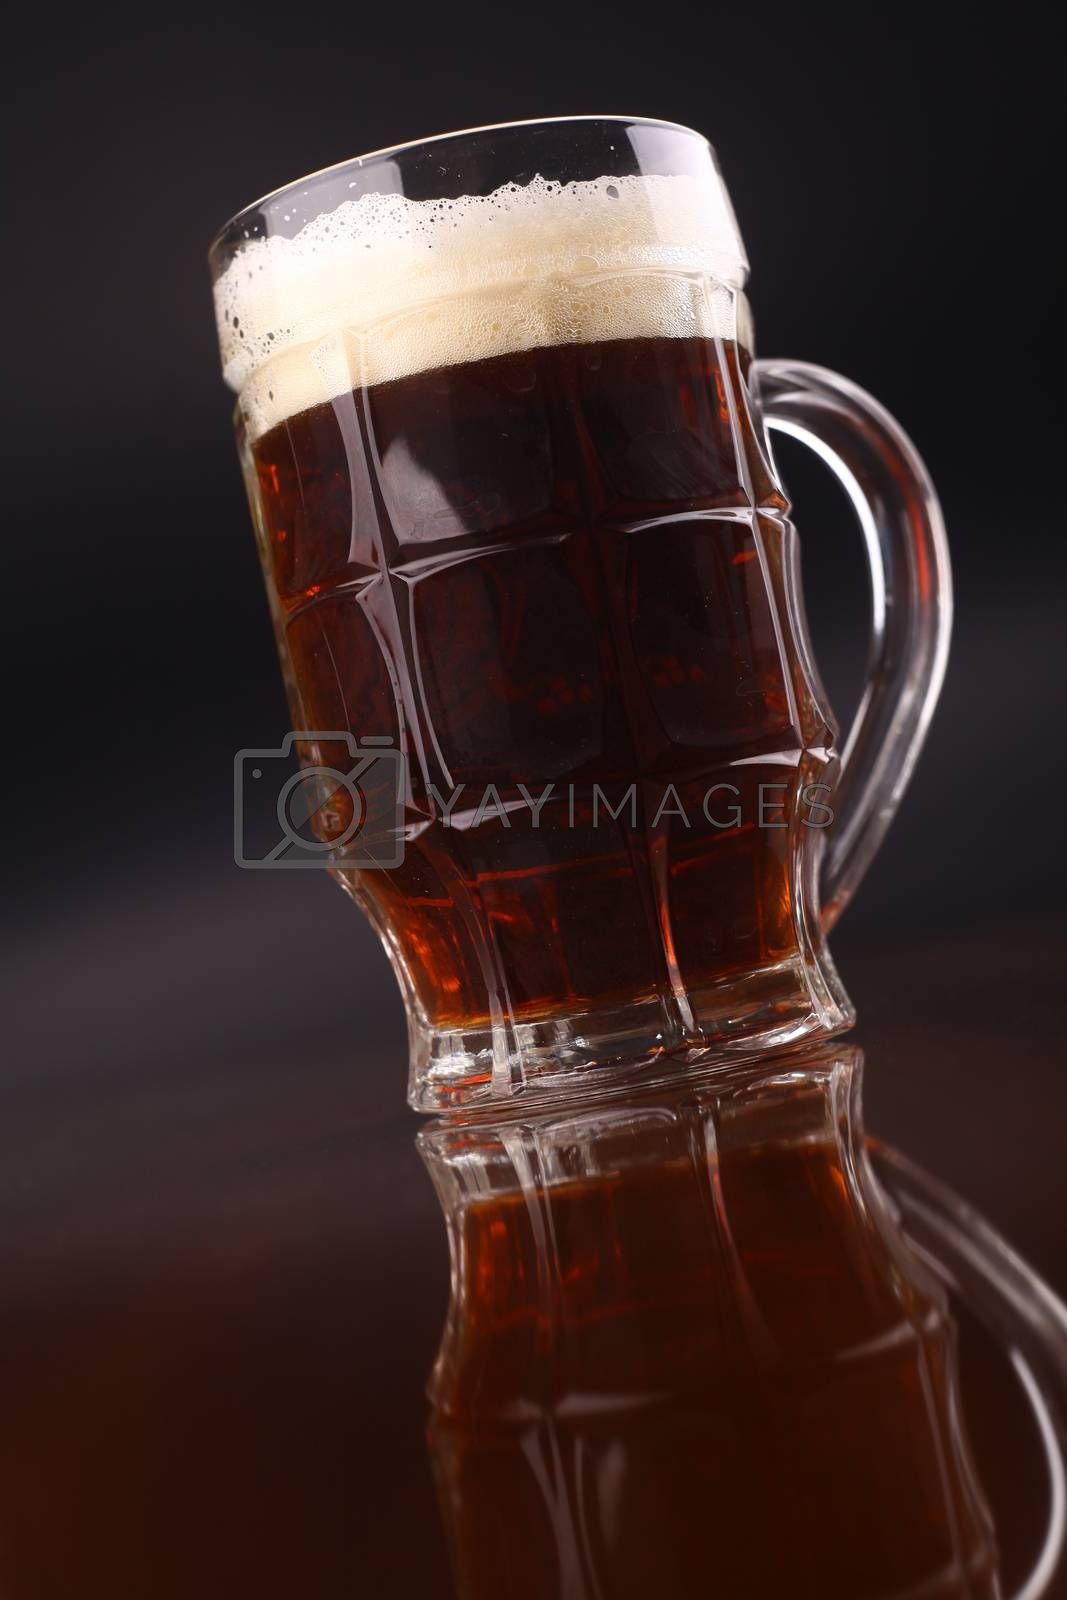 Royalty free image of Glass of beer by hiddenhallow